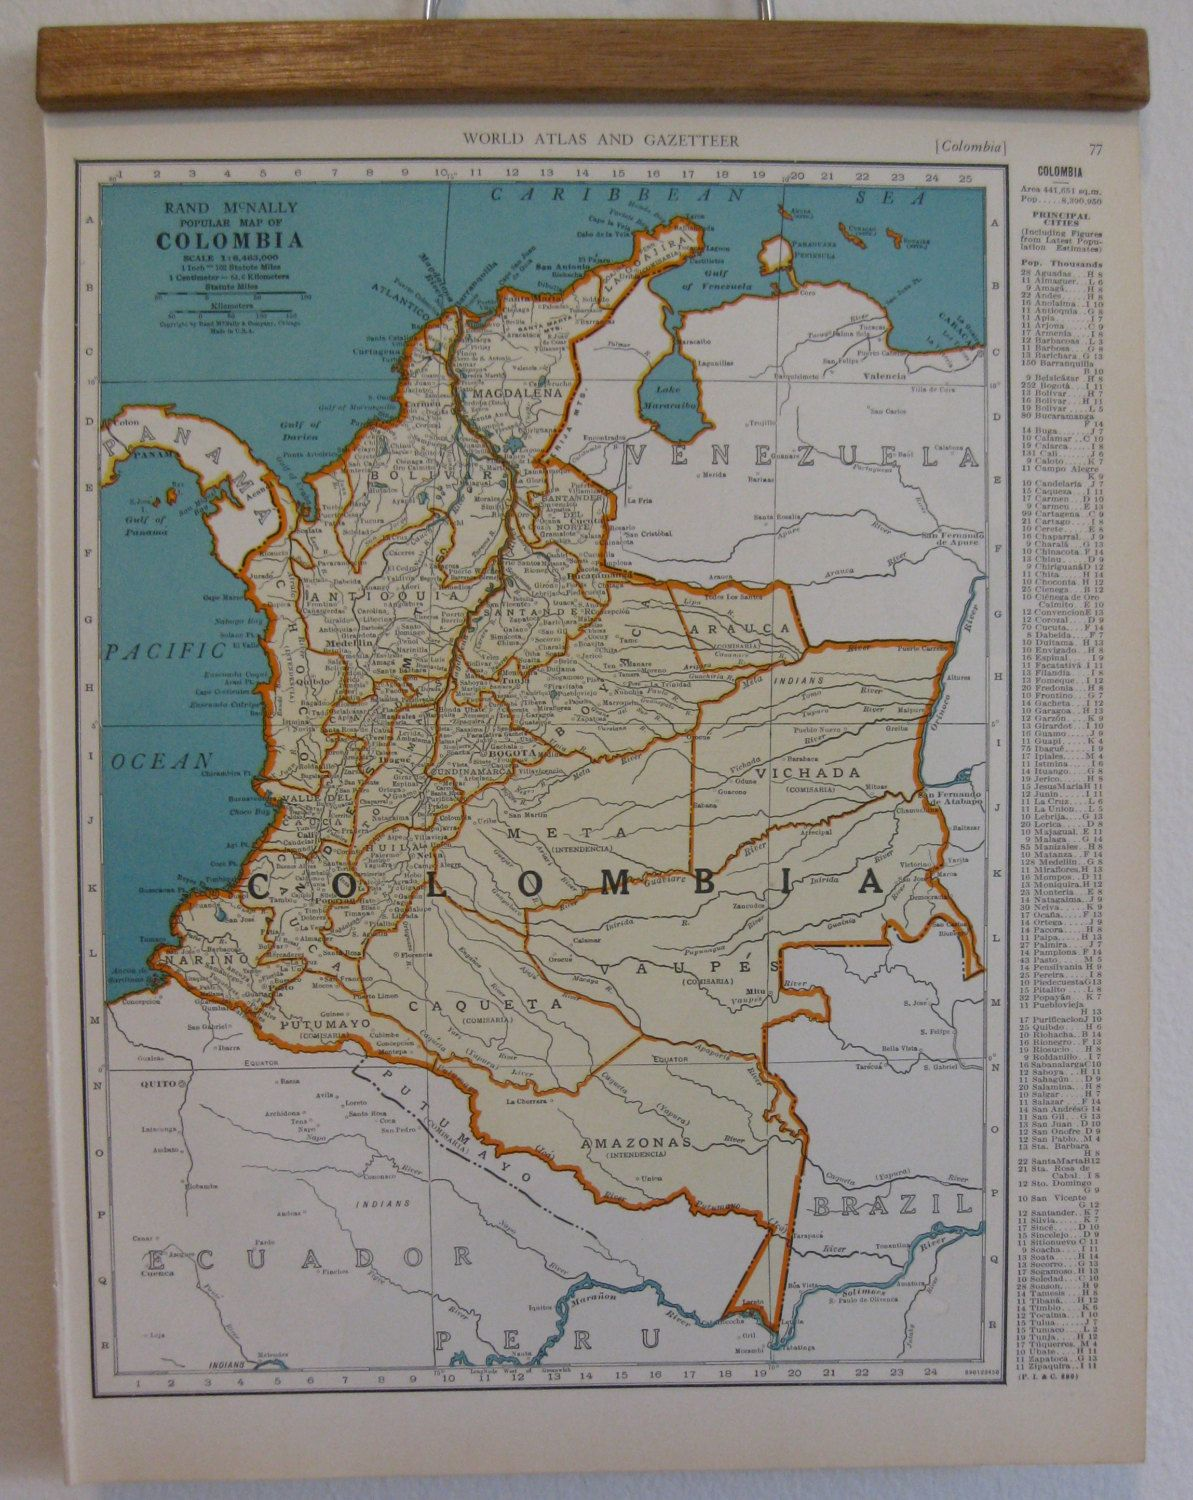 Old map of columbia from the 1940s old maps pinterest old map of columbia brazil peru and ecuador from the colliers world atlas and gazetteer of 1940 gumiabroncs Gallery